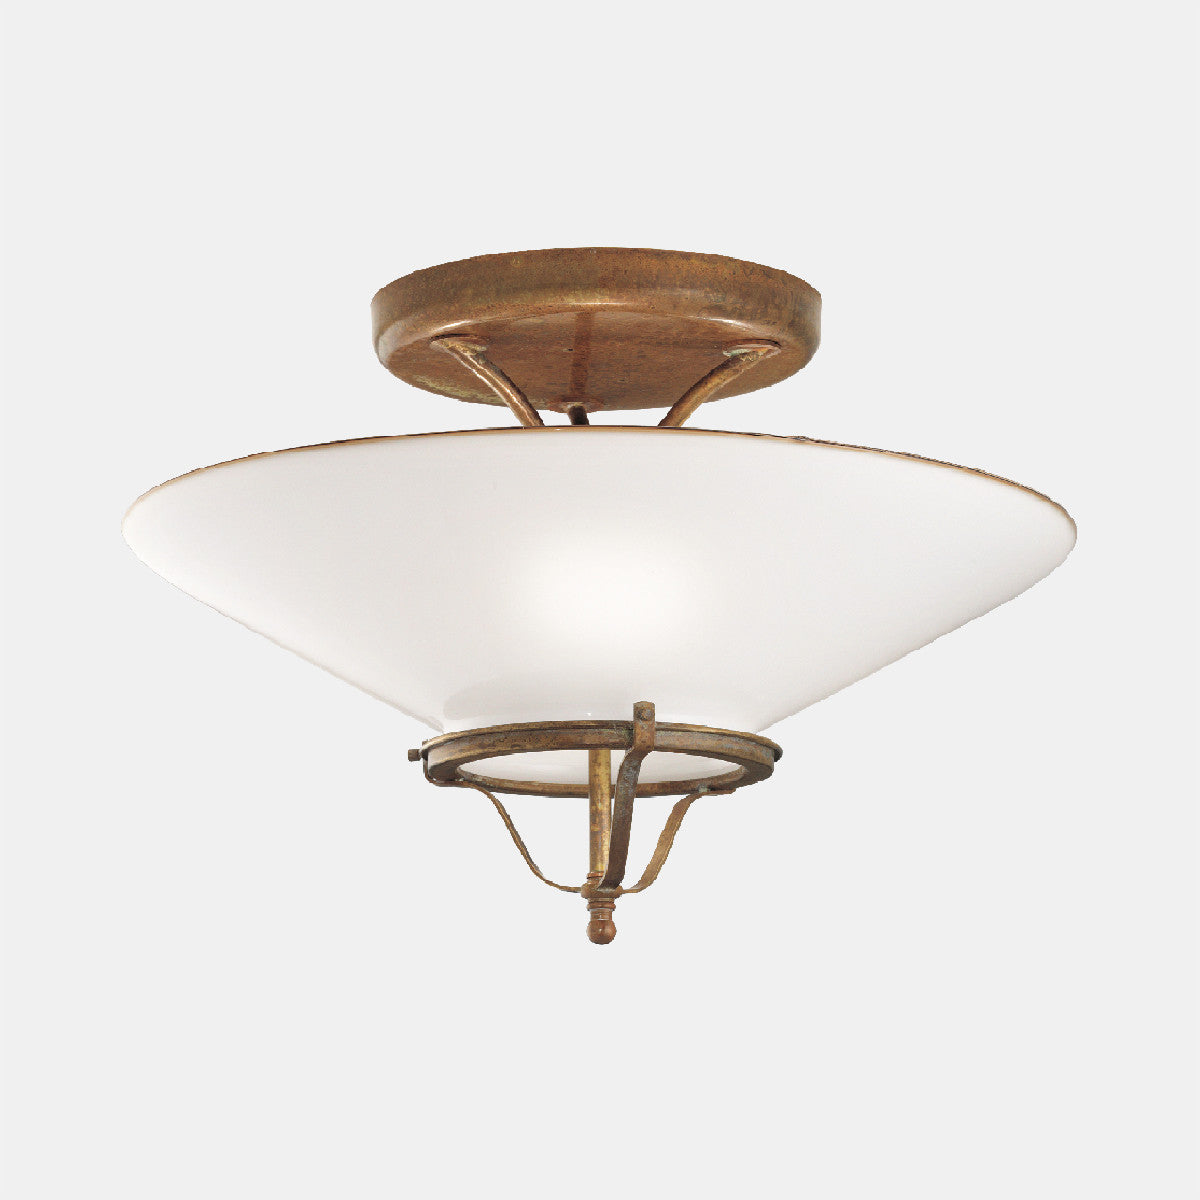 Il Fanale COUNTRY Ceiling Light 083.02.OV | touchGOODS